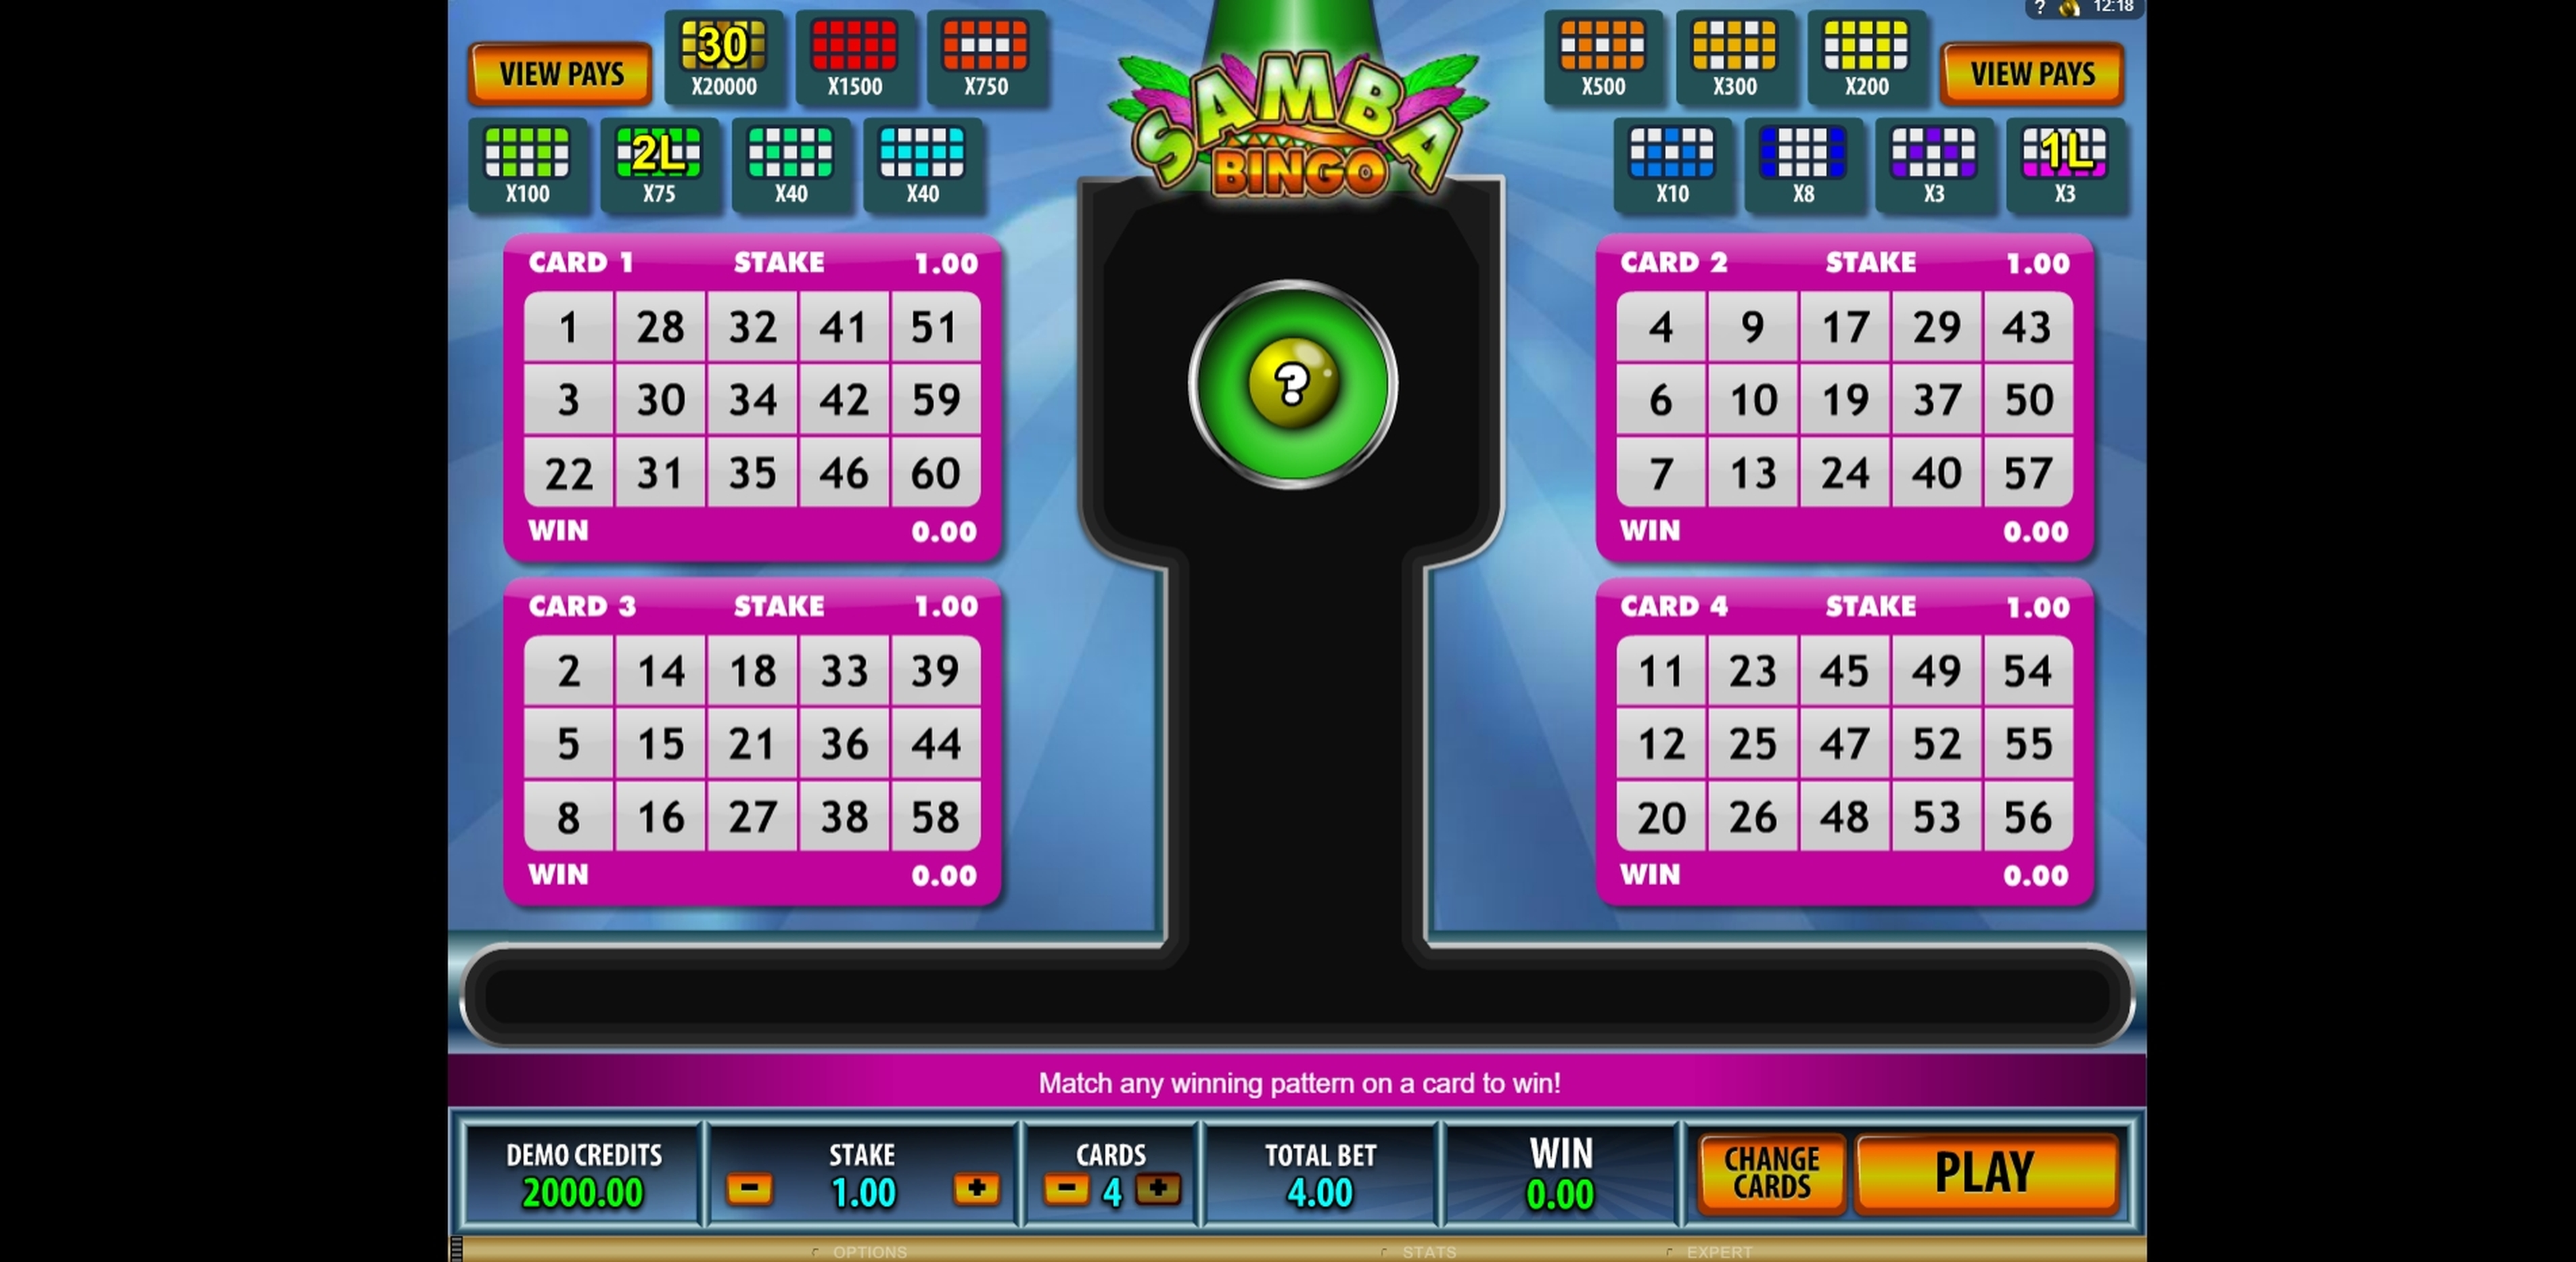 Reels in Samba Bingo Slot Game by Microgaming